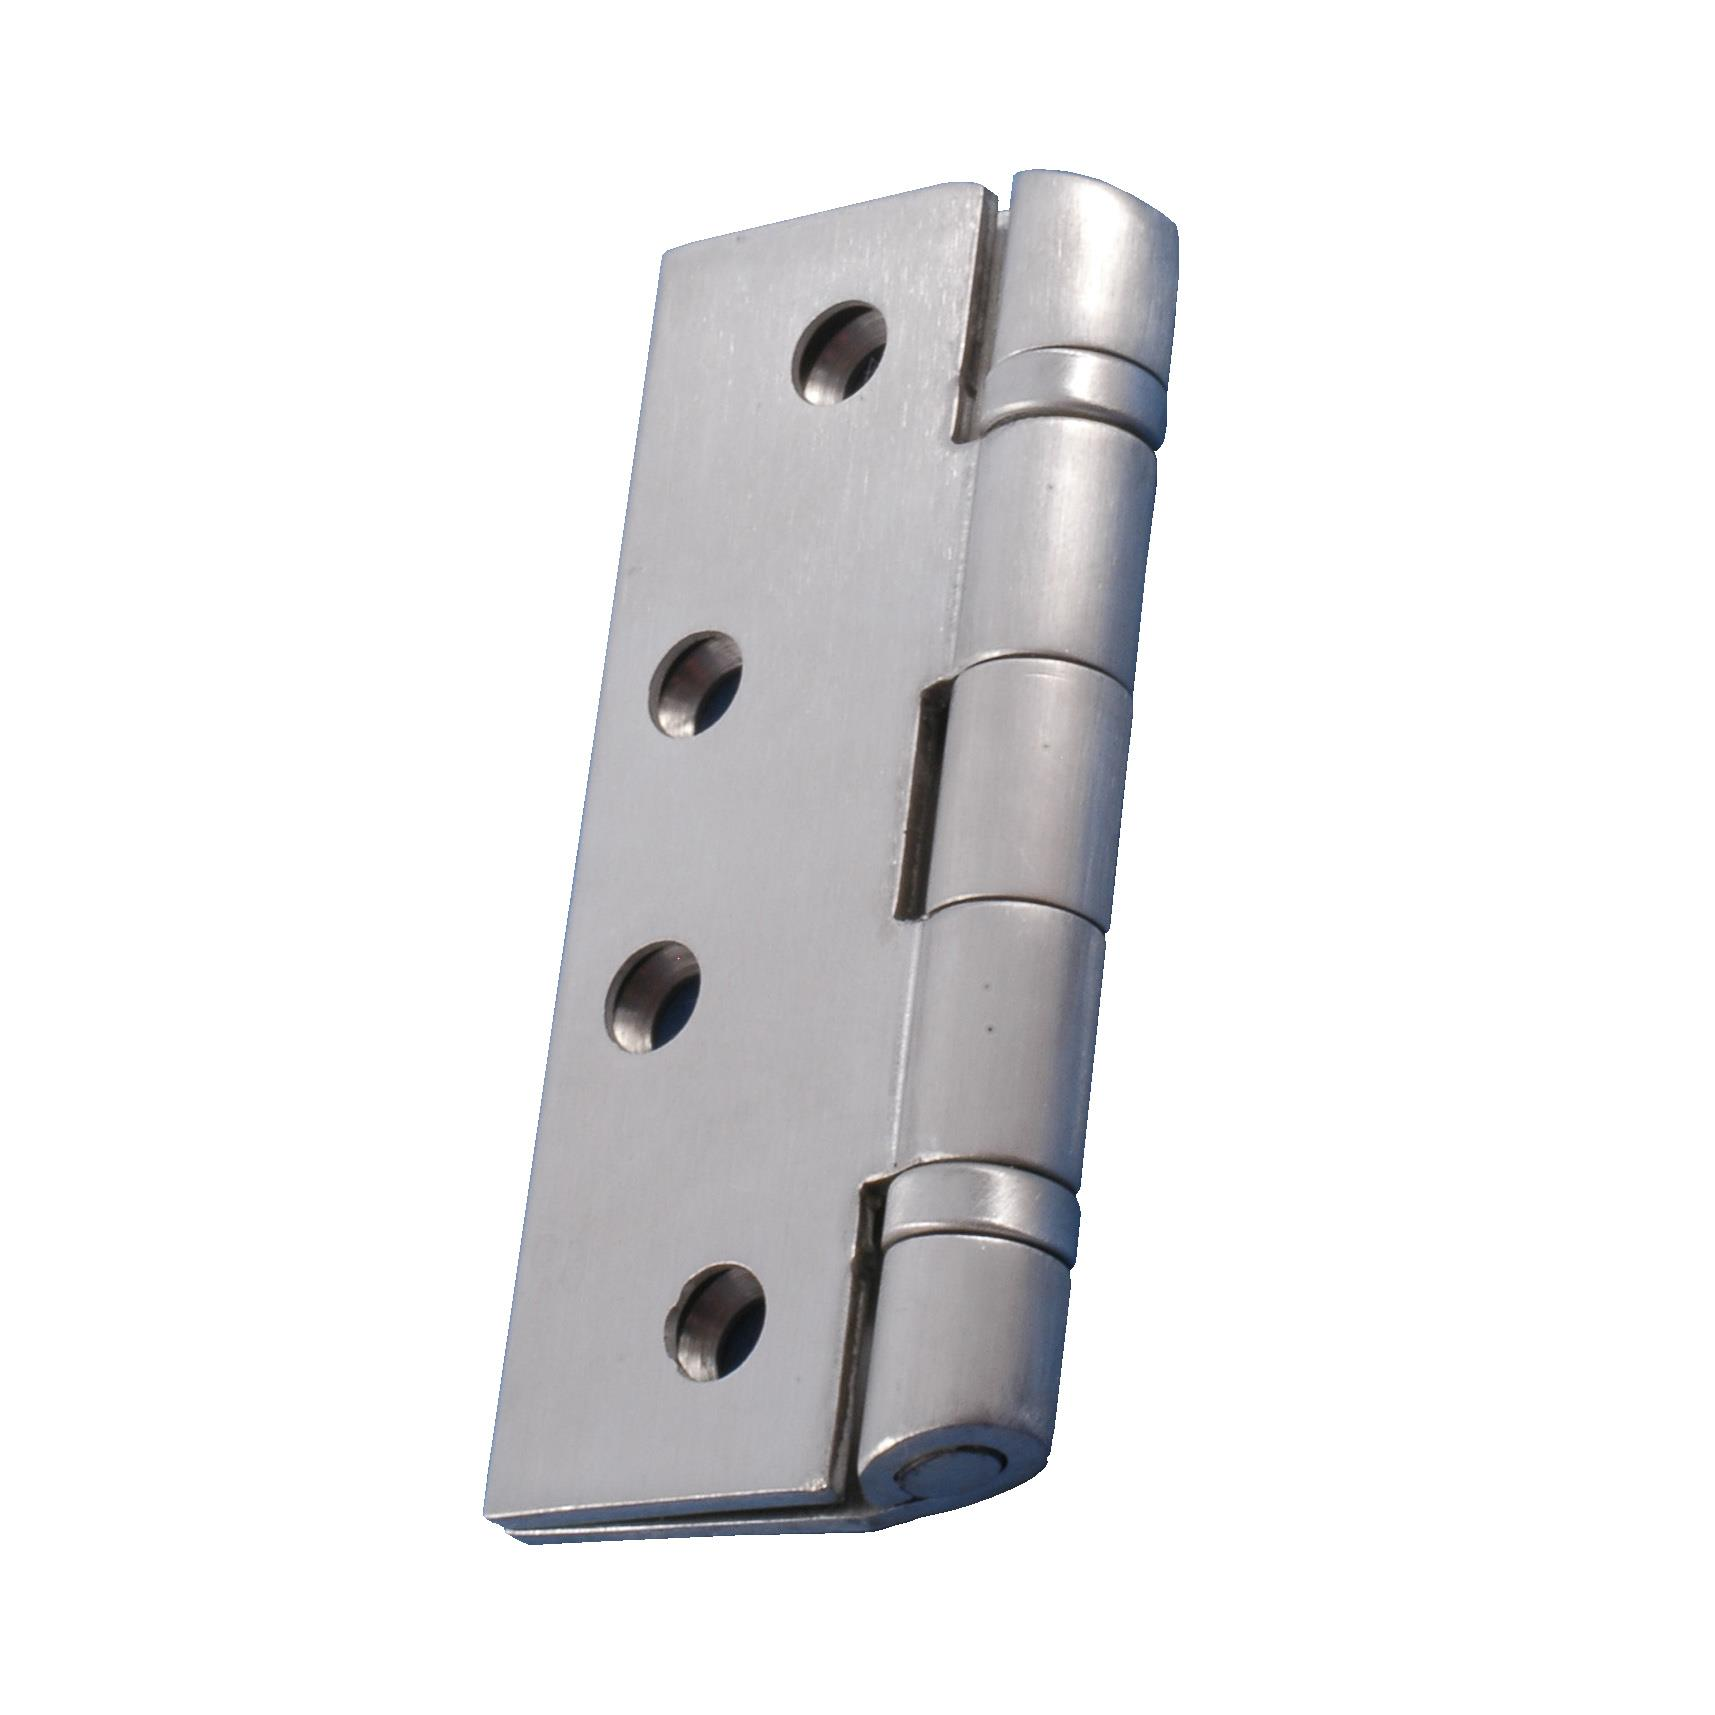 ALH - Anti-Ligature Hinge